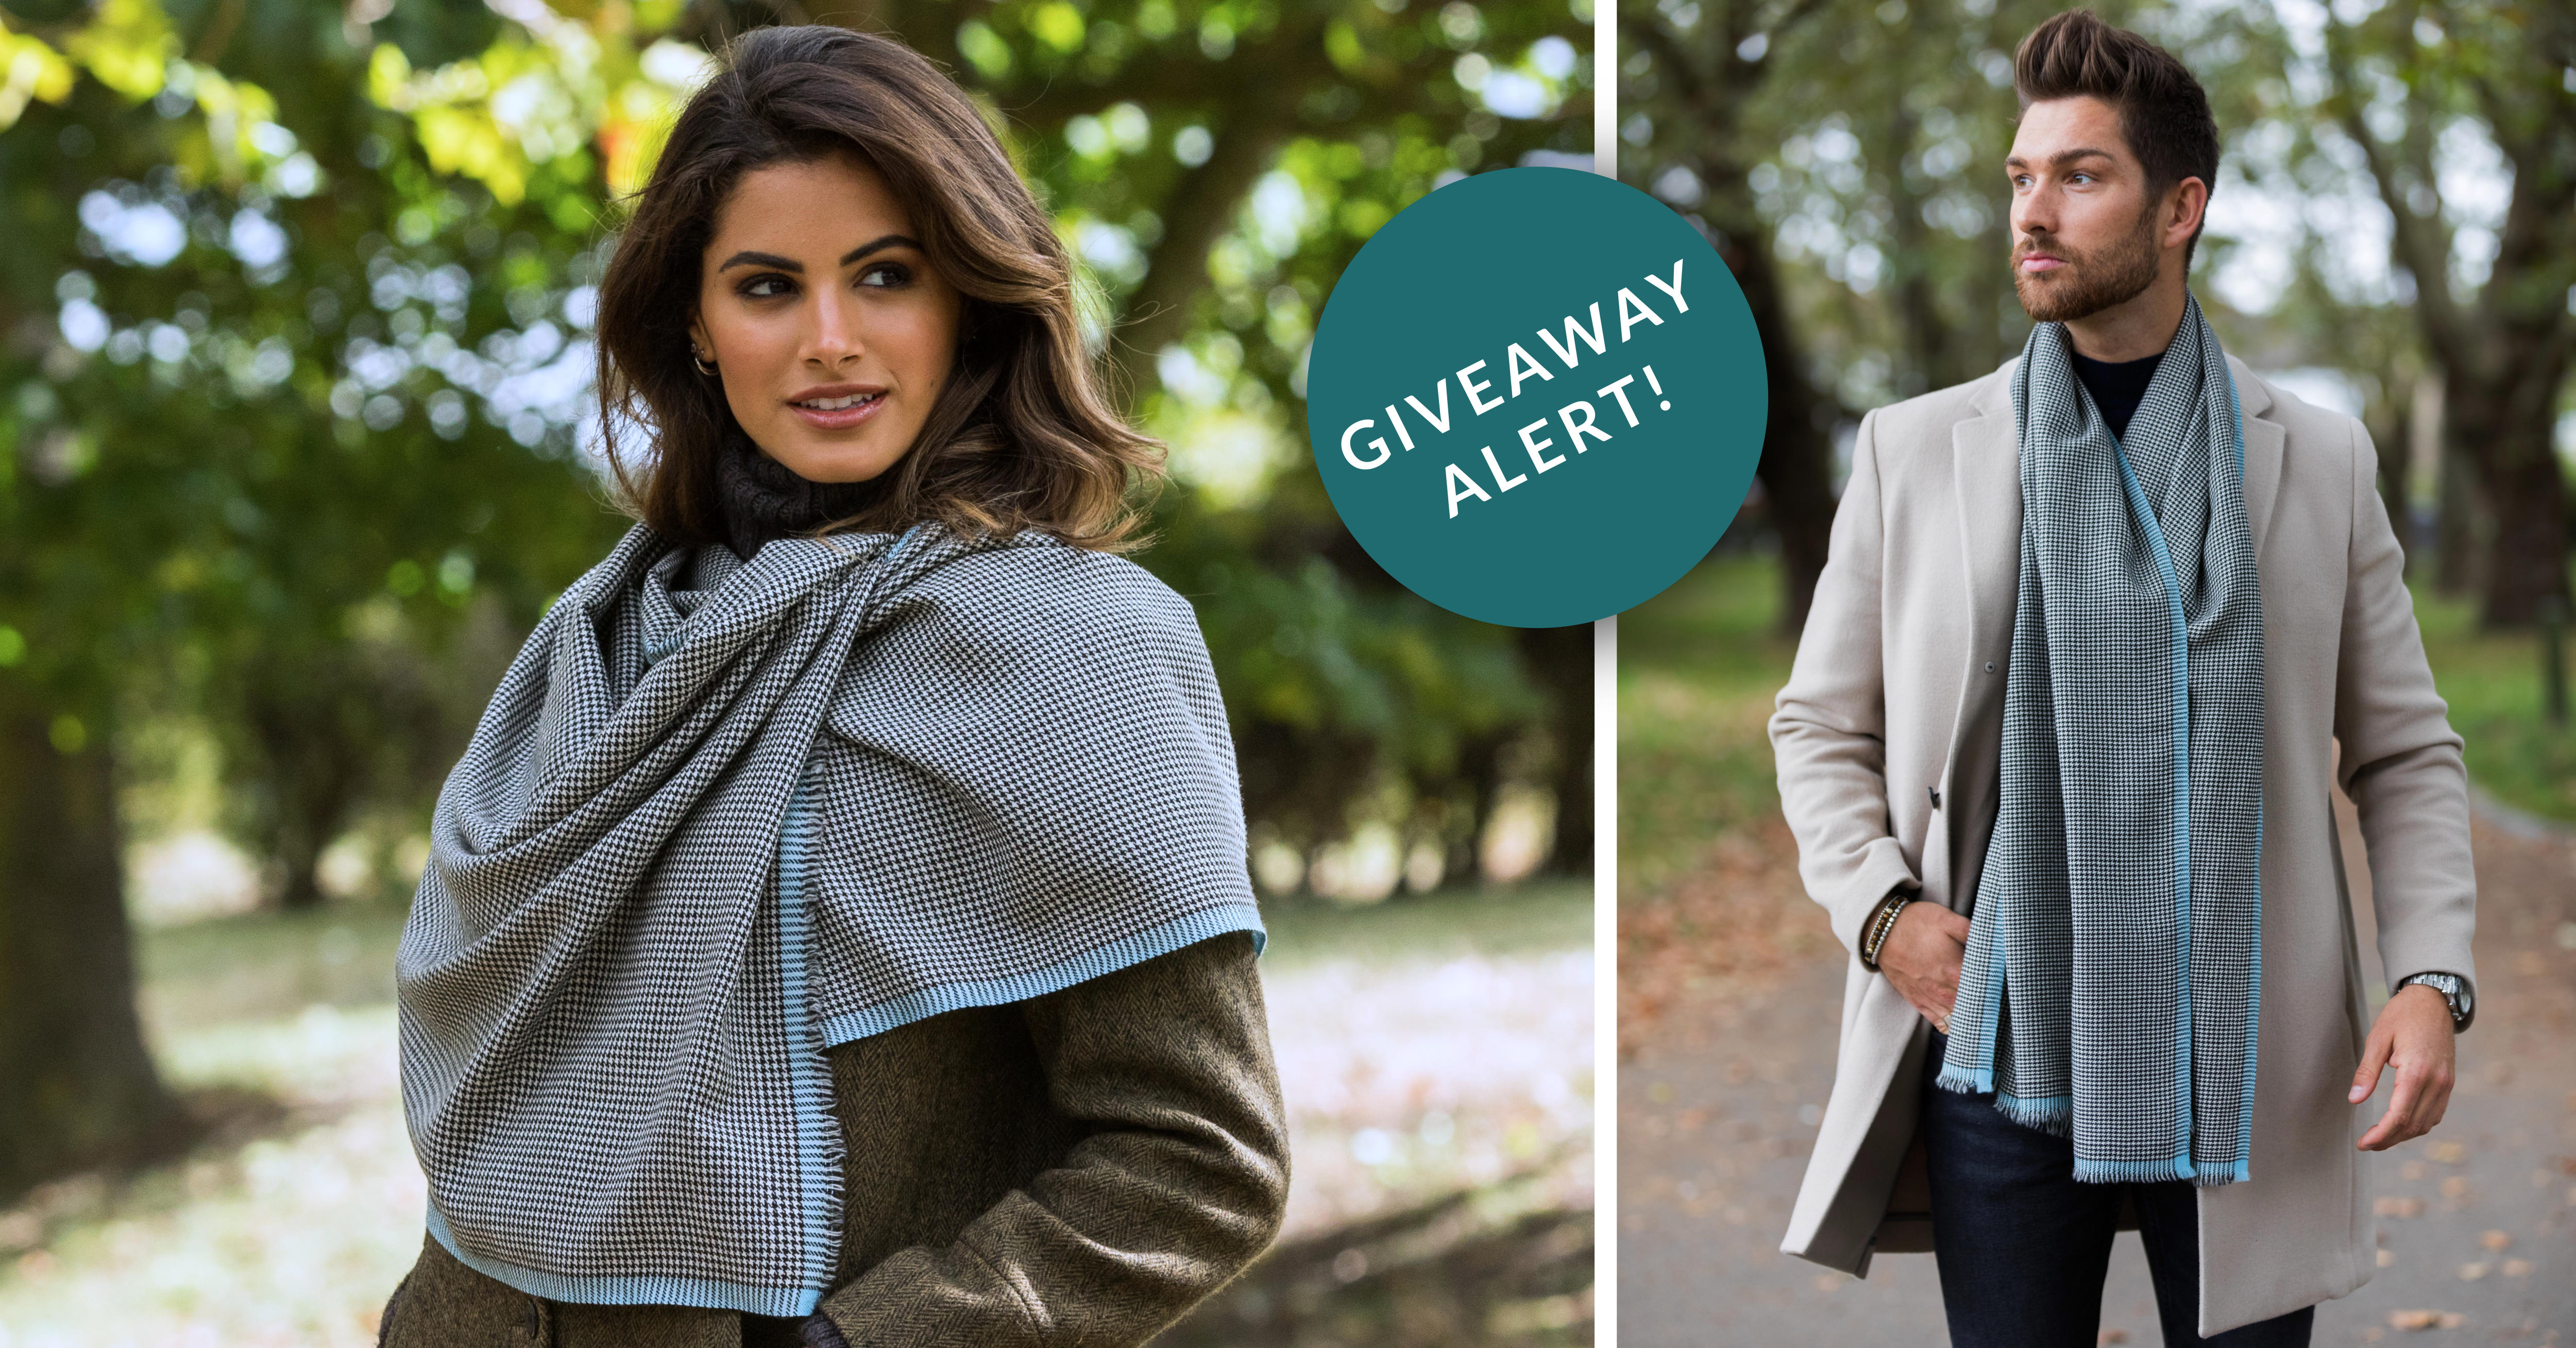 WIN a likemary Houndstooth Pashmina Scarf in Crystal Blue!